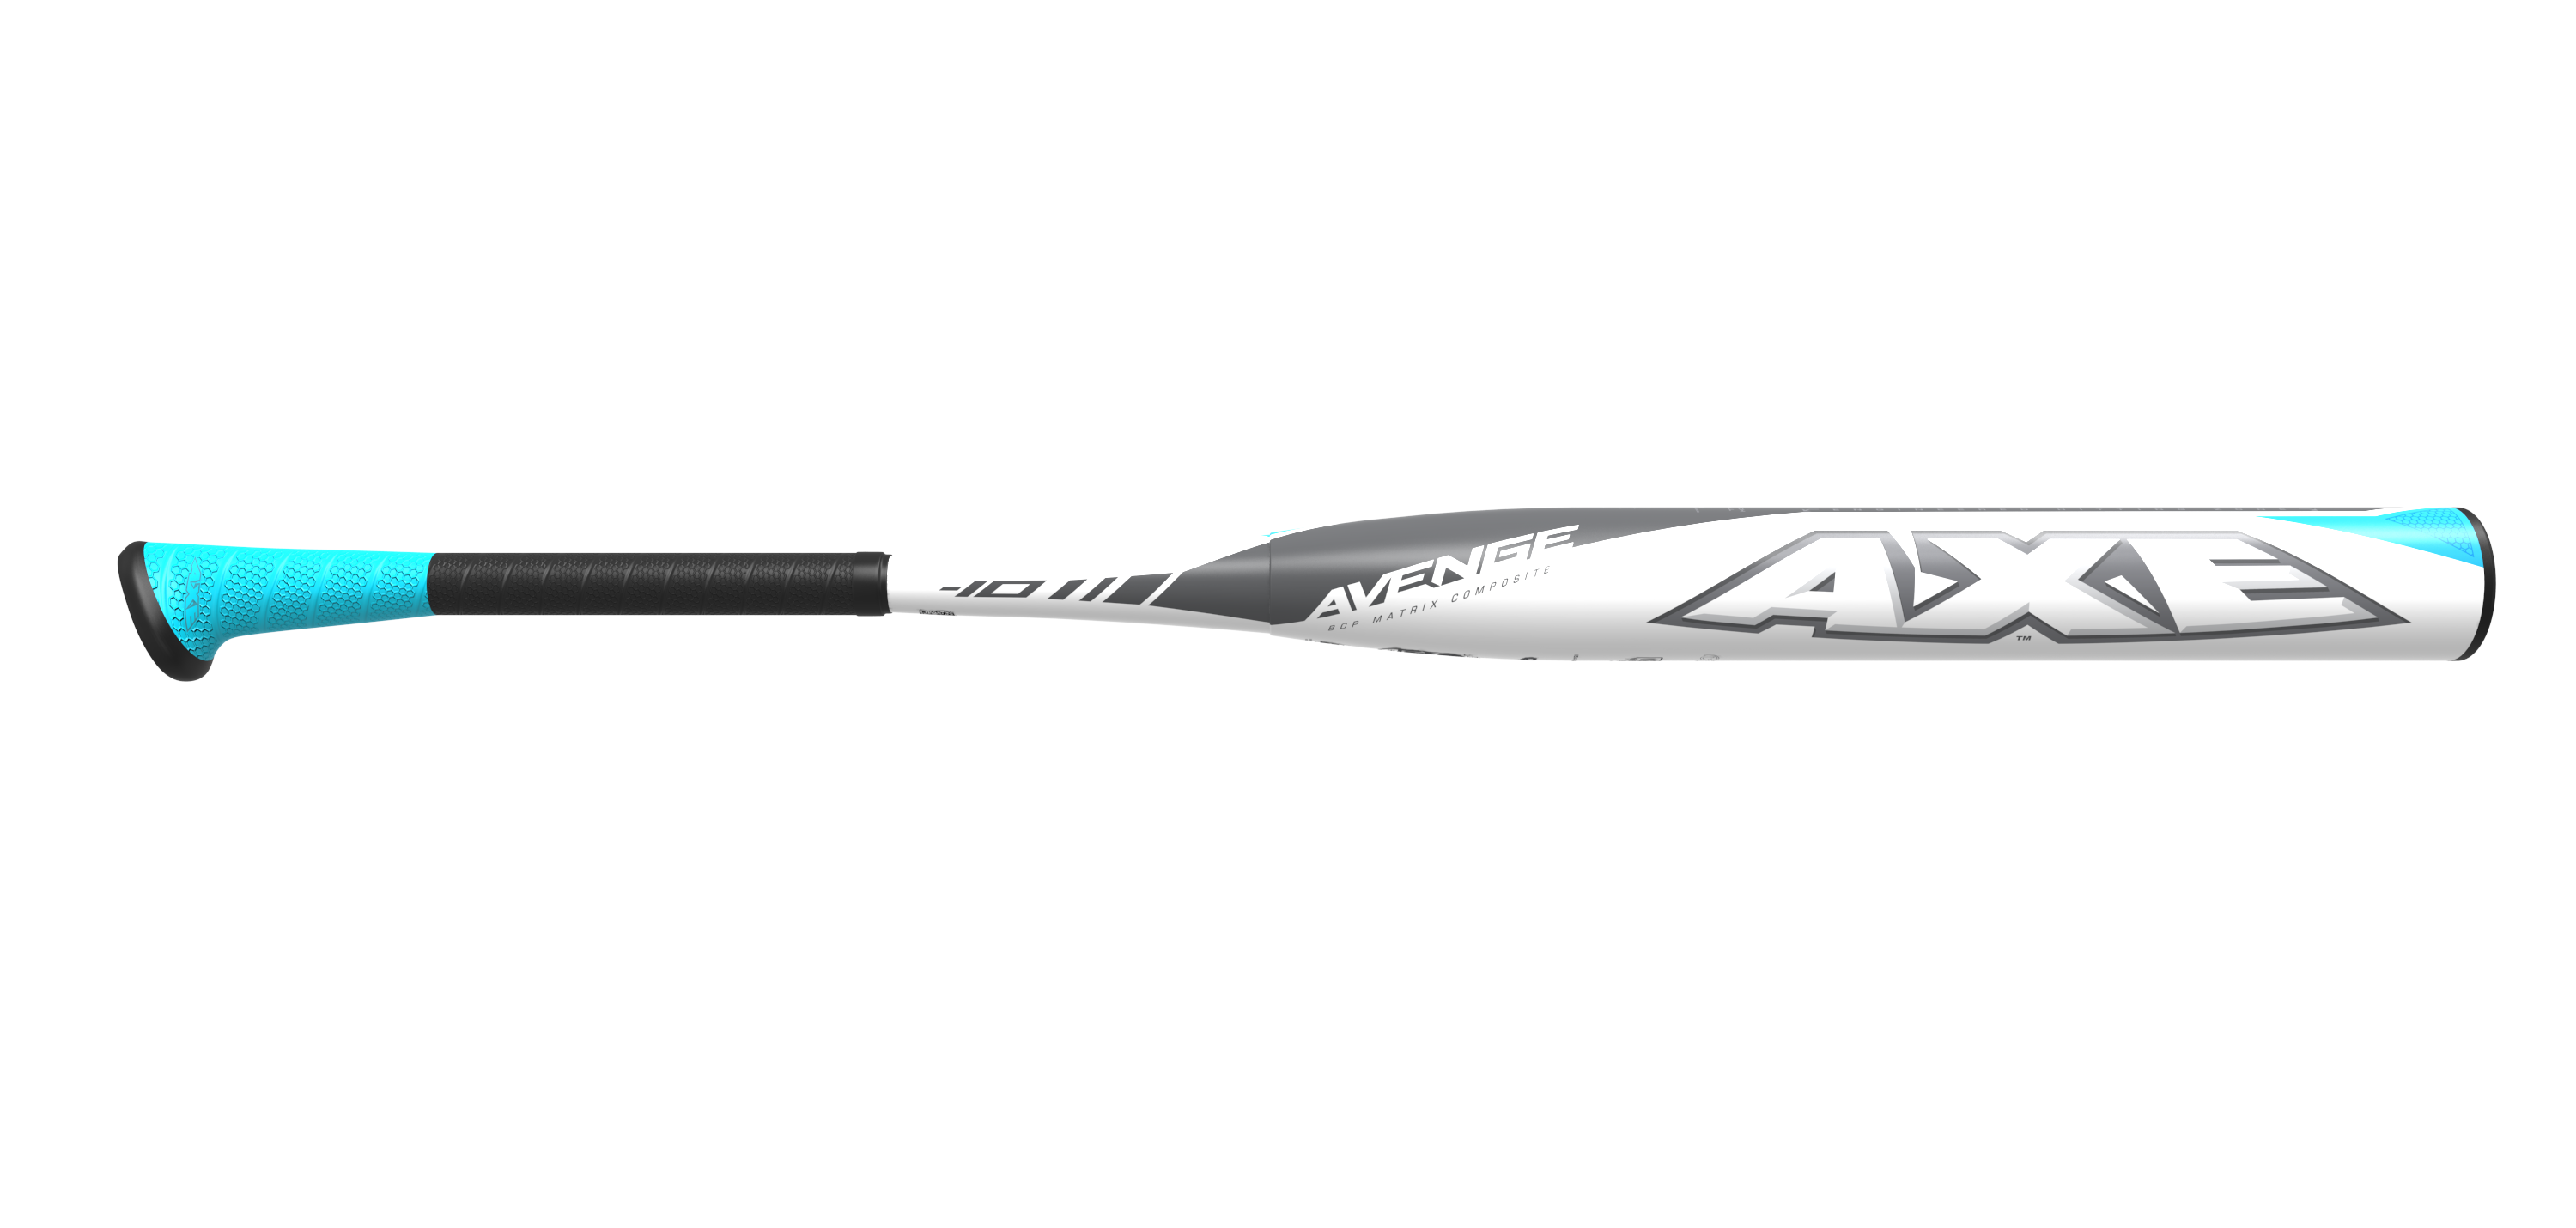 2015 Axe Bat Lineup Unveiled  Improved Performance  More Options For Youth